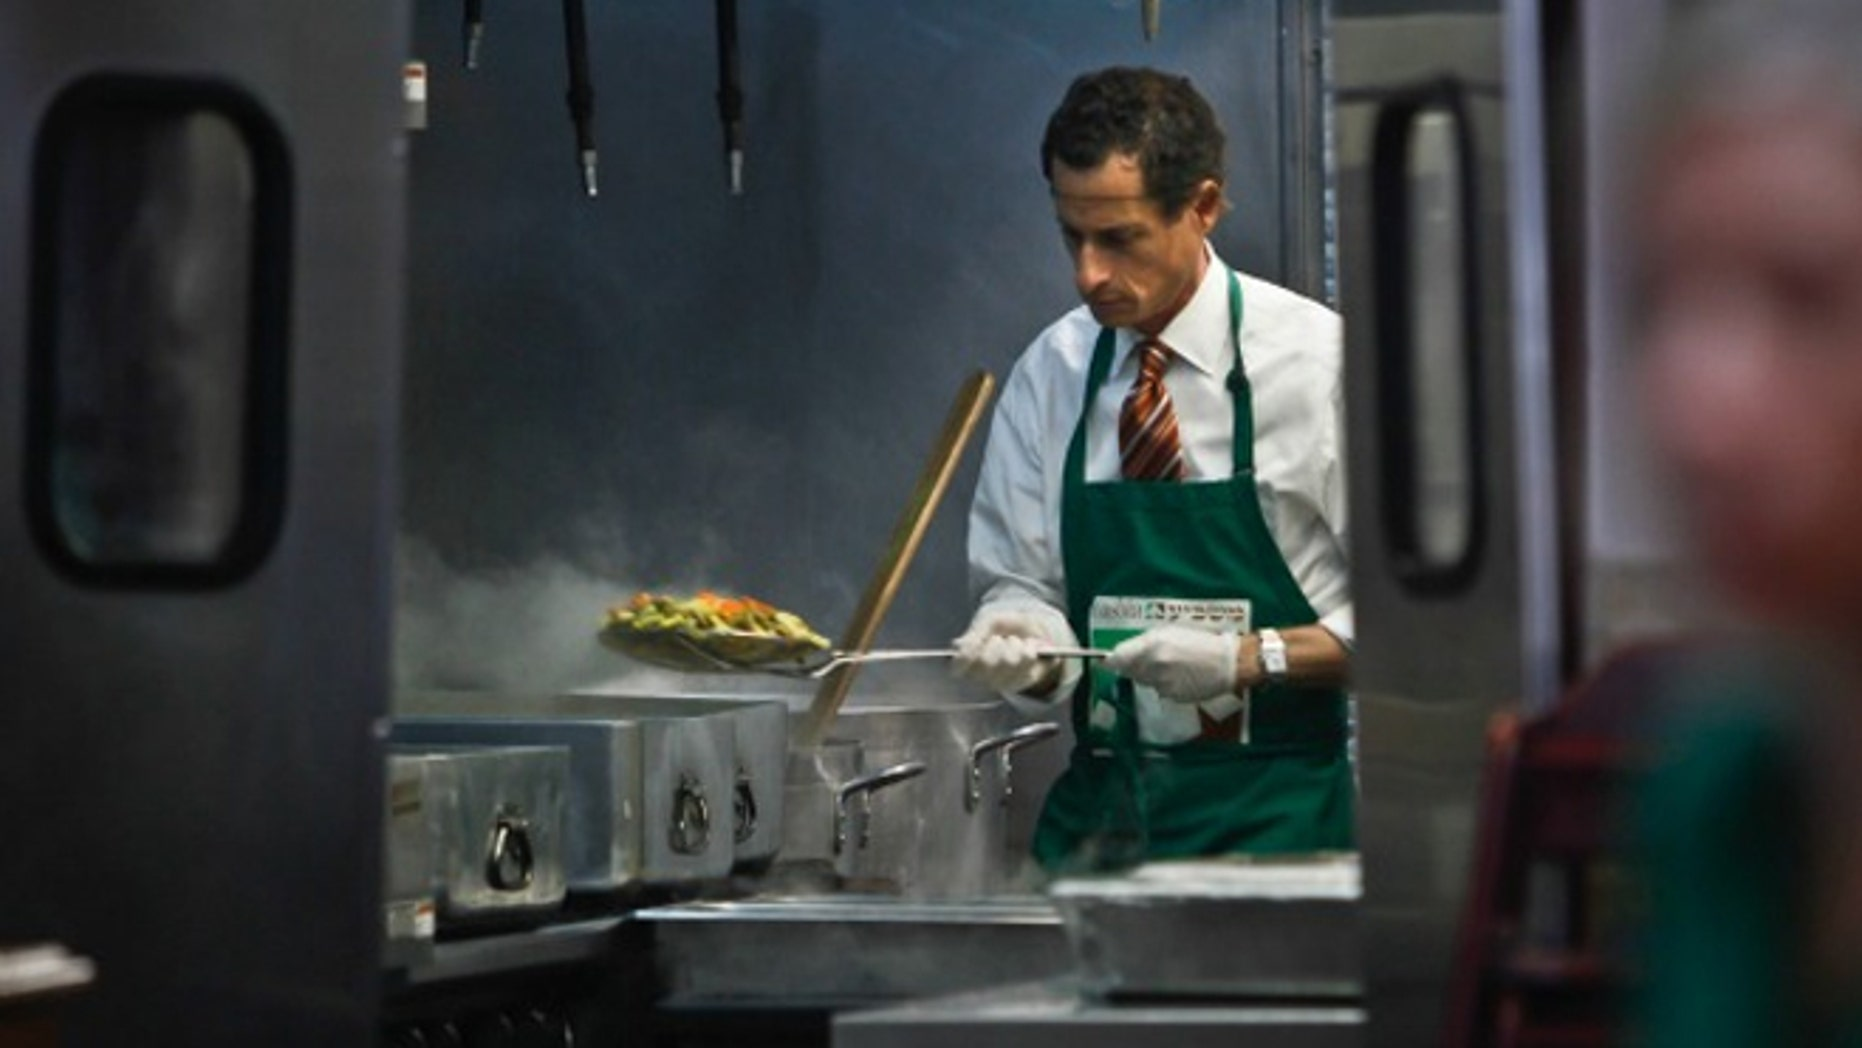 Anthony Weiner is behind a new restaurant venture, after resigning from Congress and losing his bid for New York mayor.